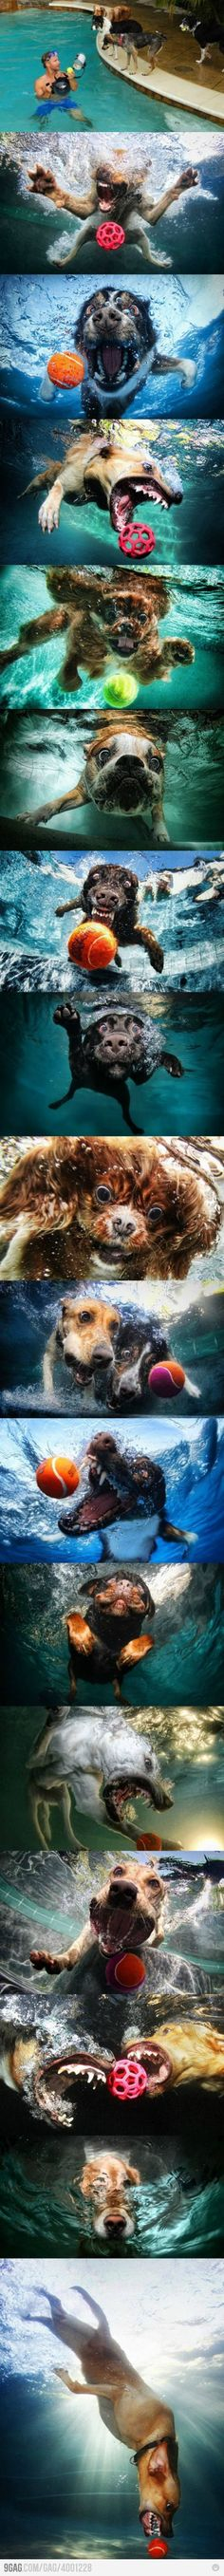 Dogs in water catching a ball :)